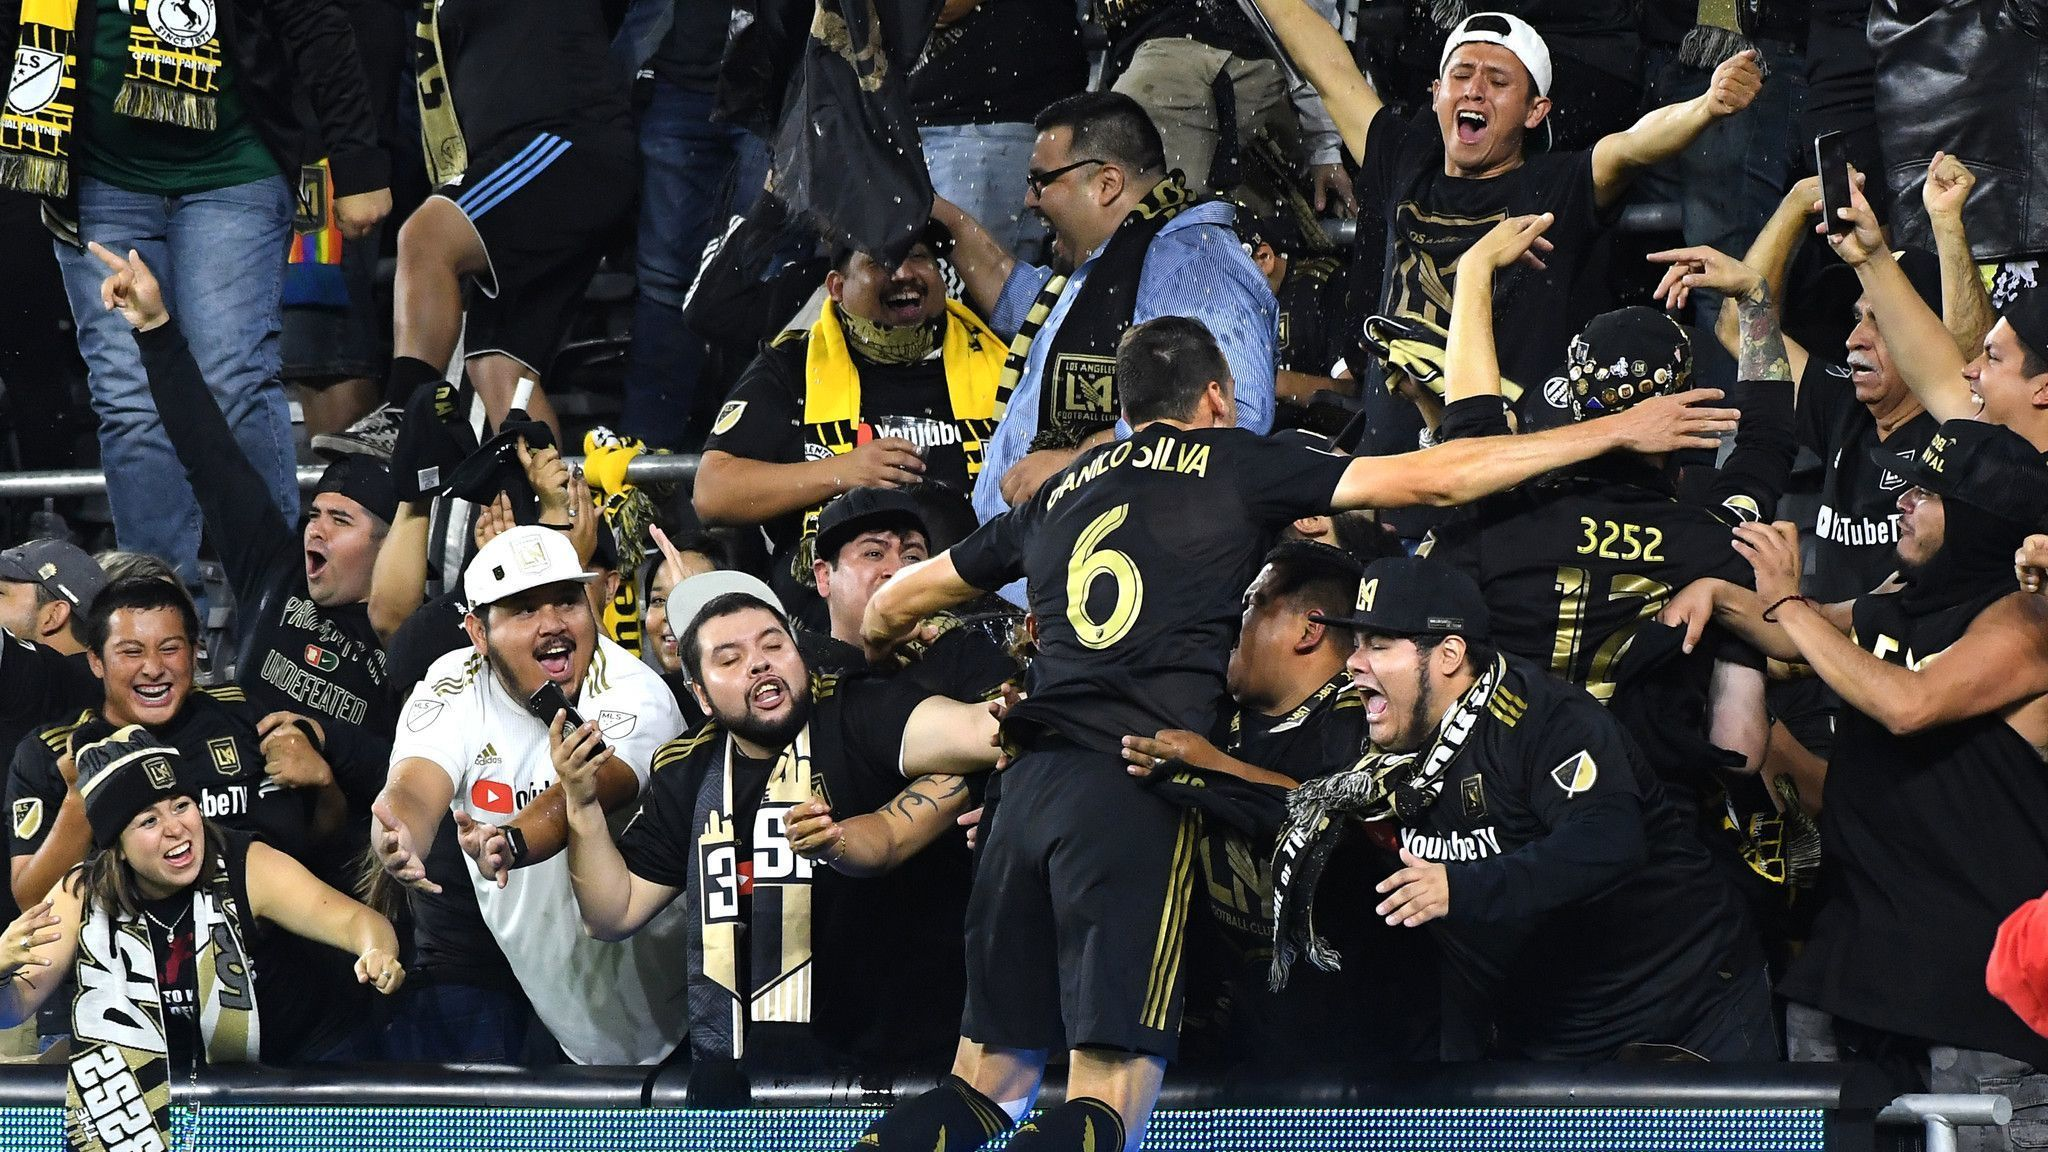 LAFC's inaugural season is over, but they have made their claim as L.A.'s soccer team